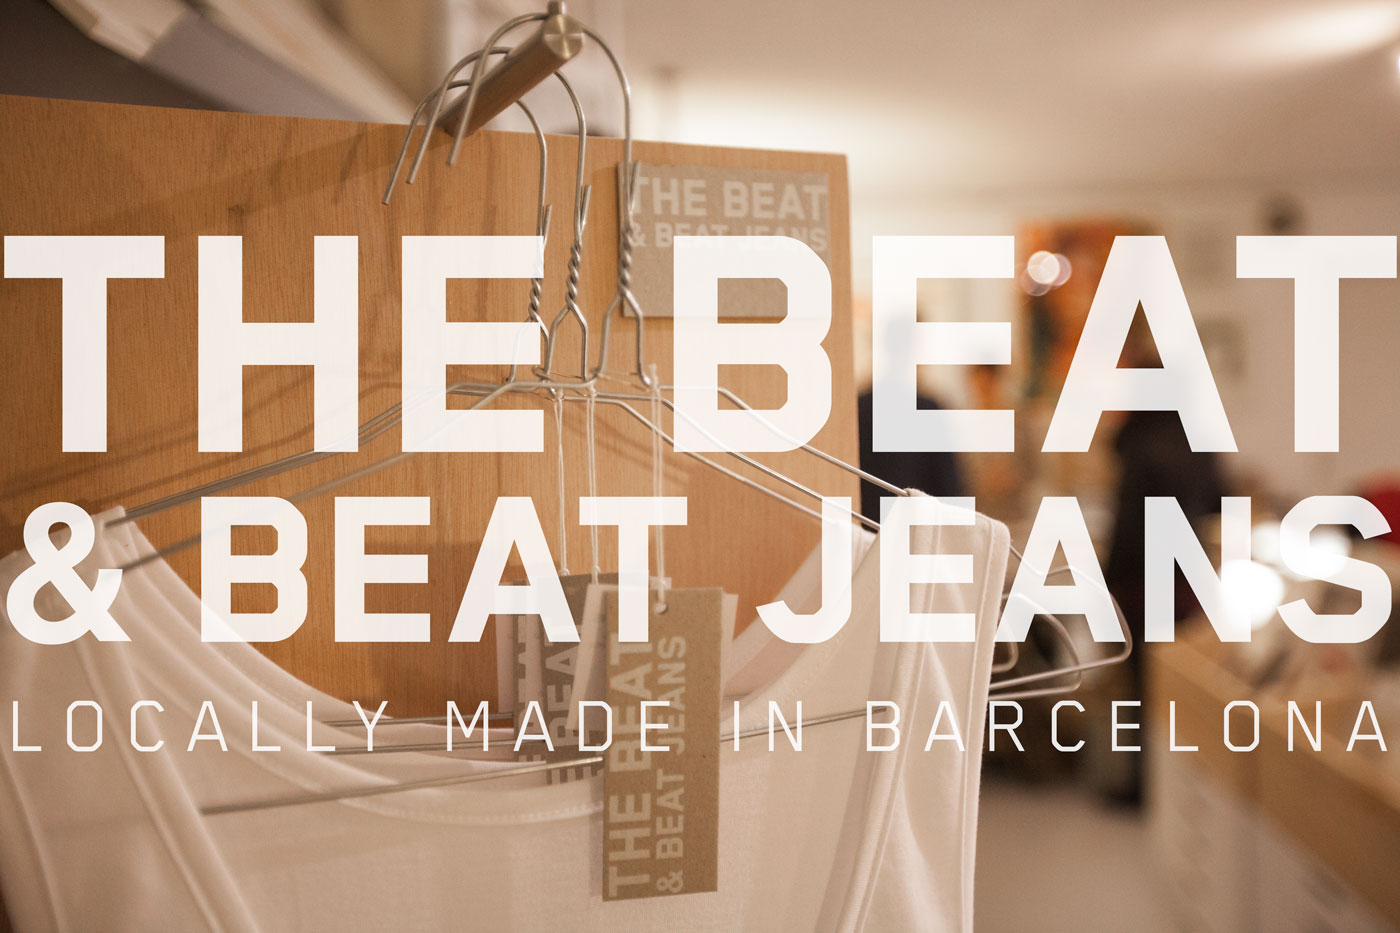 Image of a THE BEAT & BEAT JEANS stockist